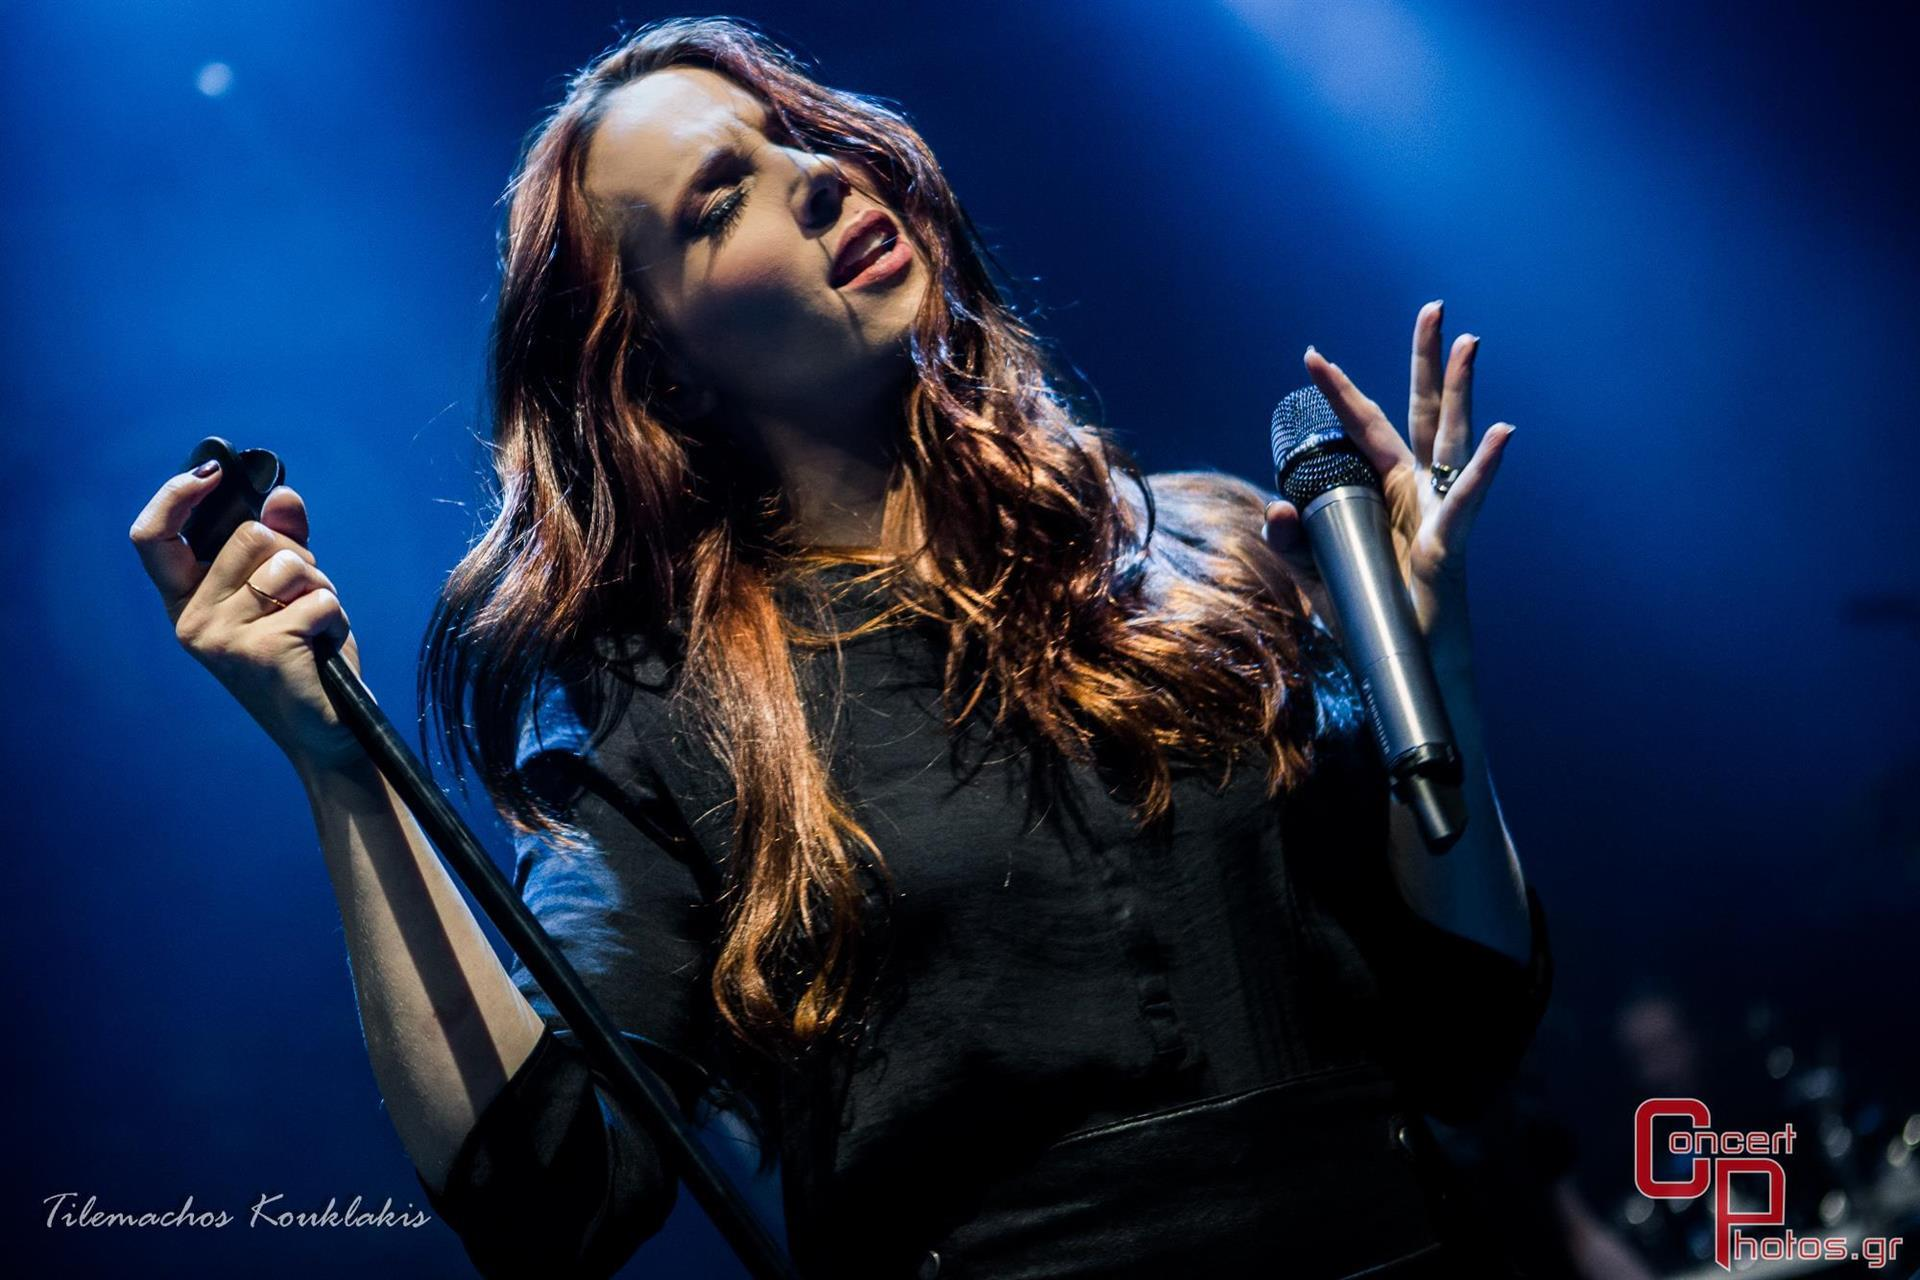 EPICA Jaded Star Fuzz Club-EPICA Jaded Star Fuzz Club photographer:  - Epica_09